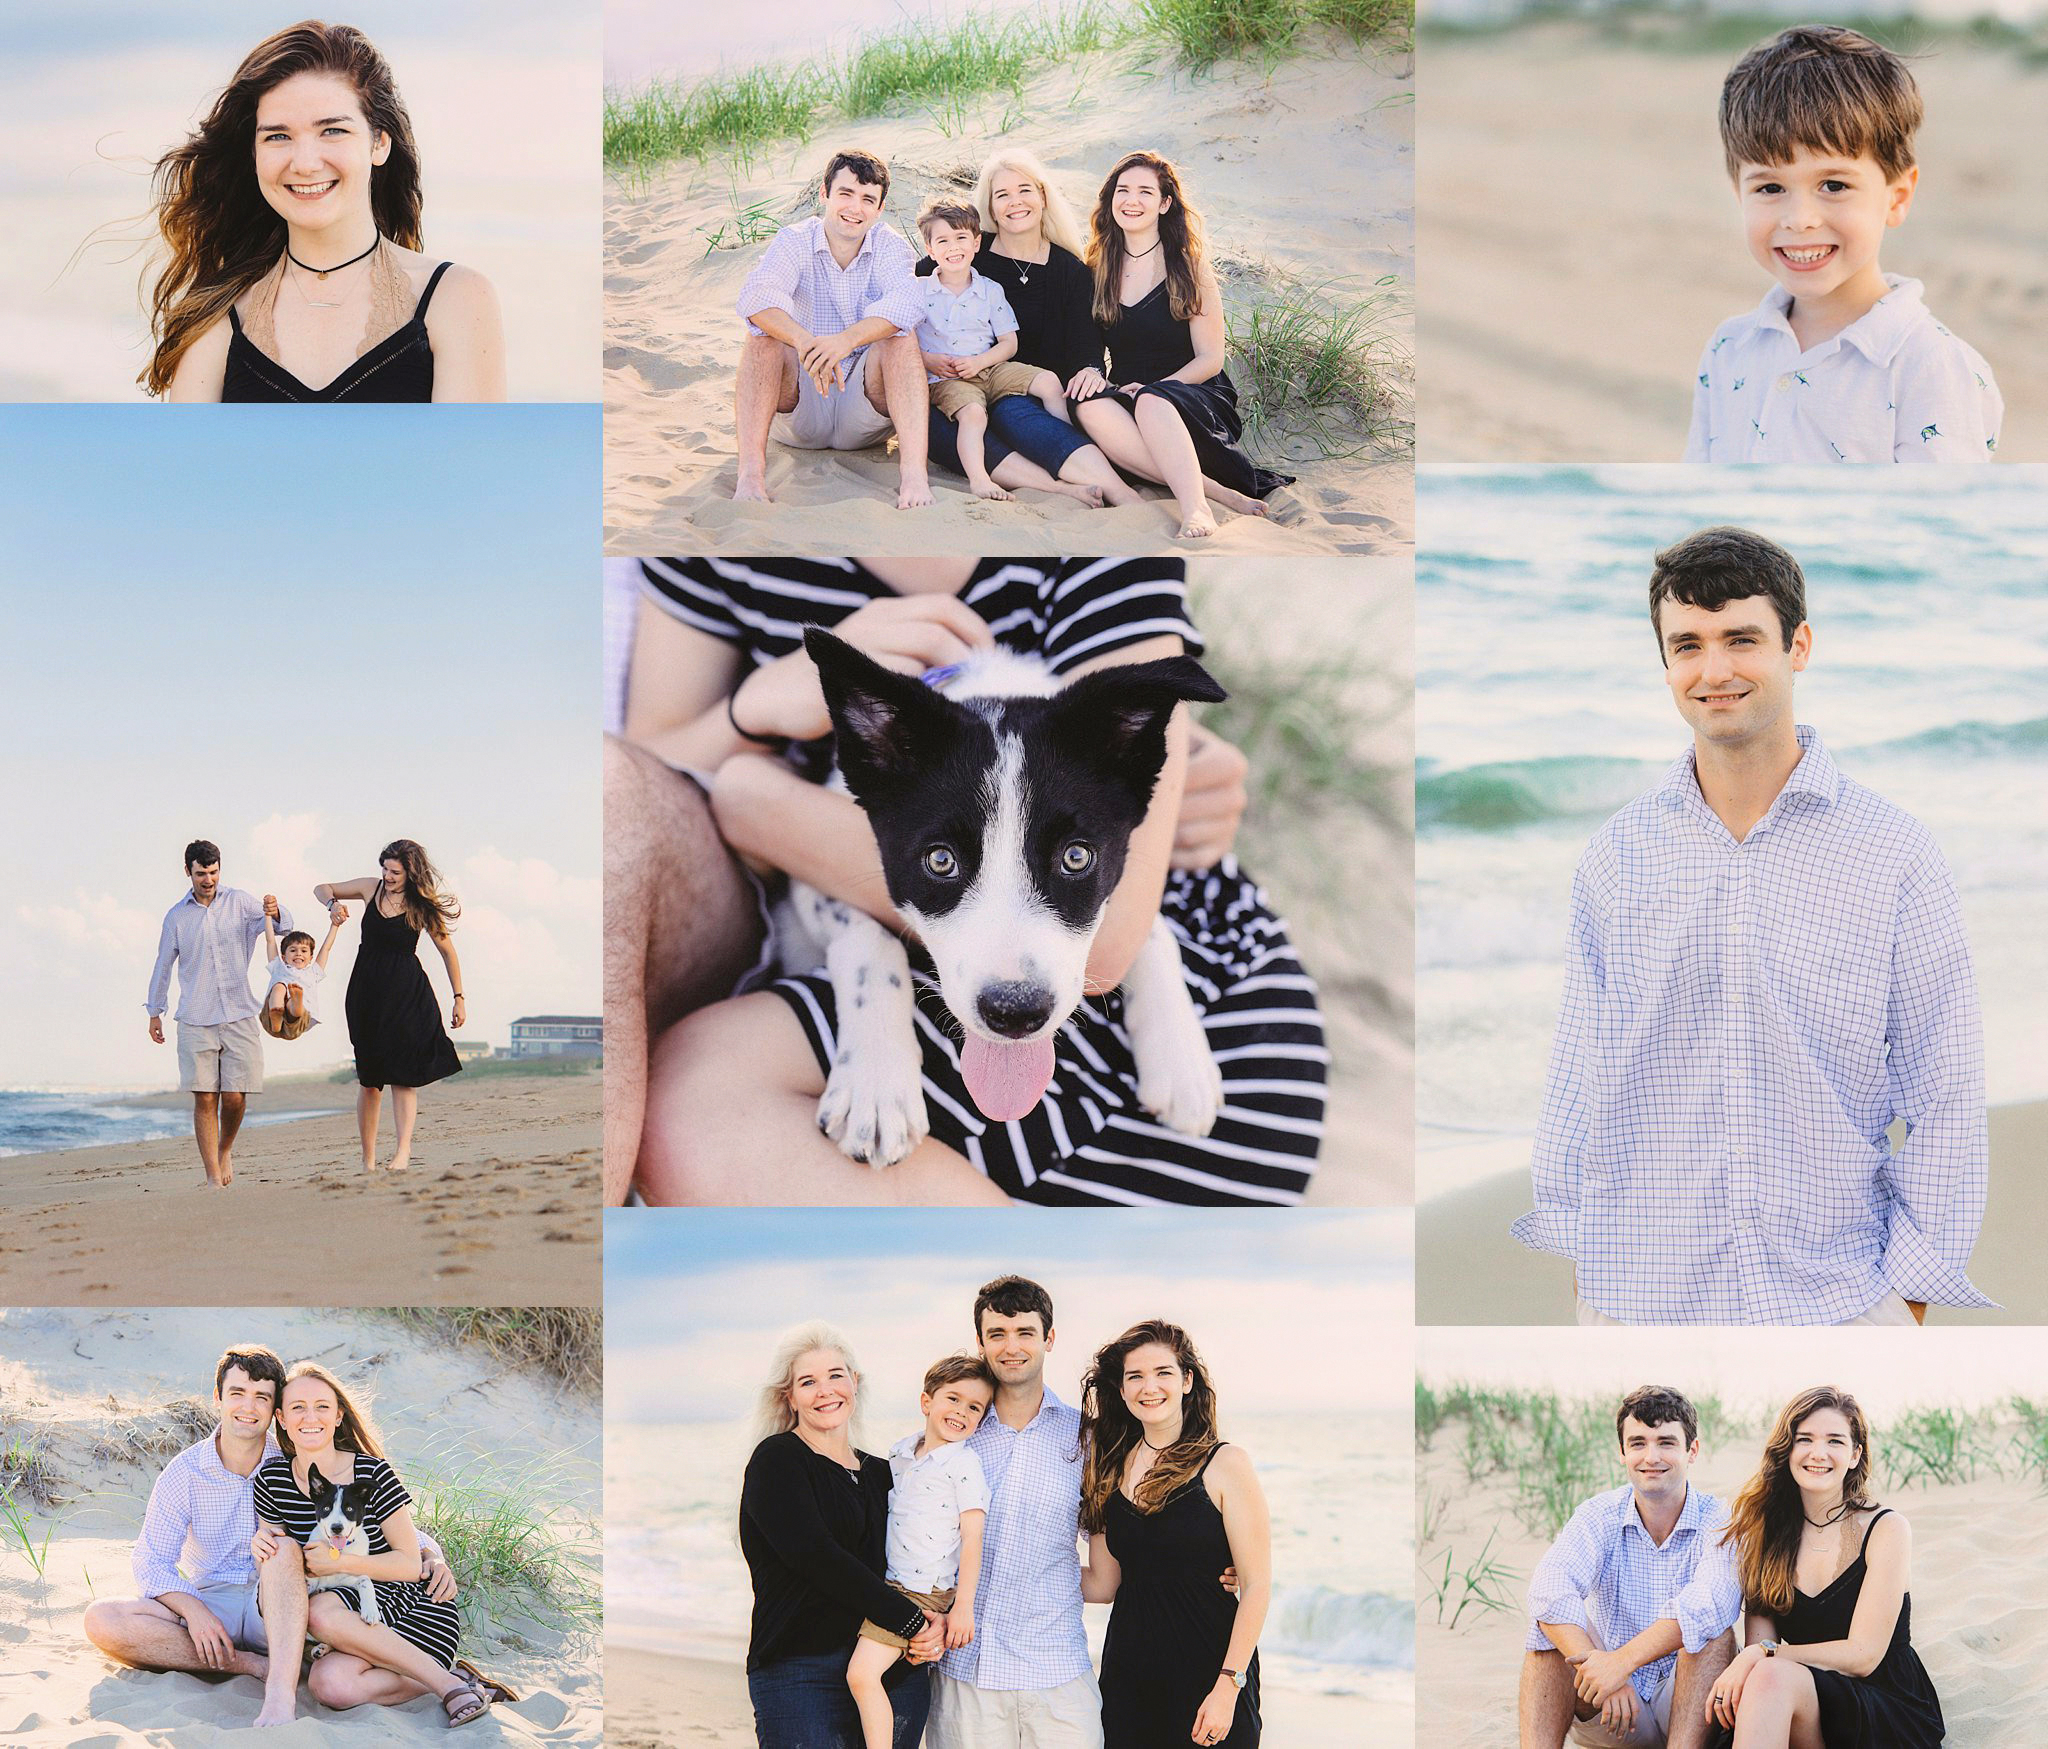 sandbridge-beach-family-photographer-melissa-bliss-photography-virginia-beach-lifesytle-photographers.jpg